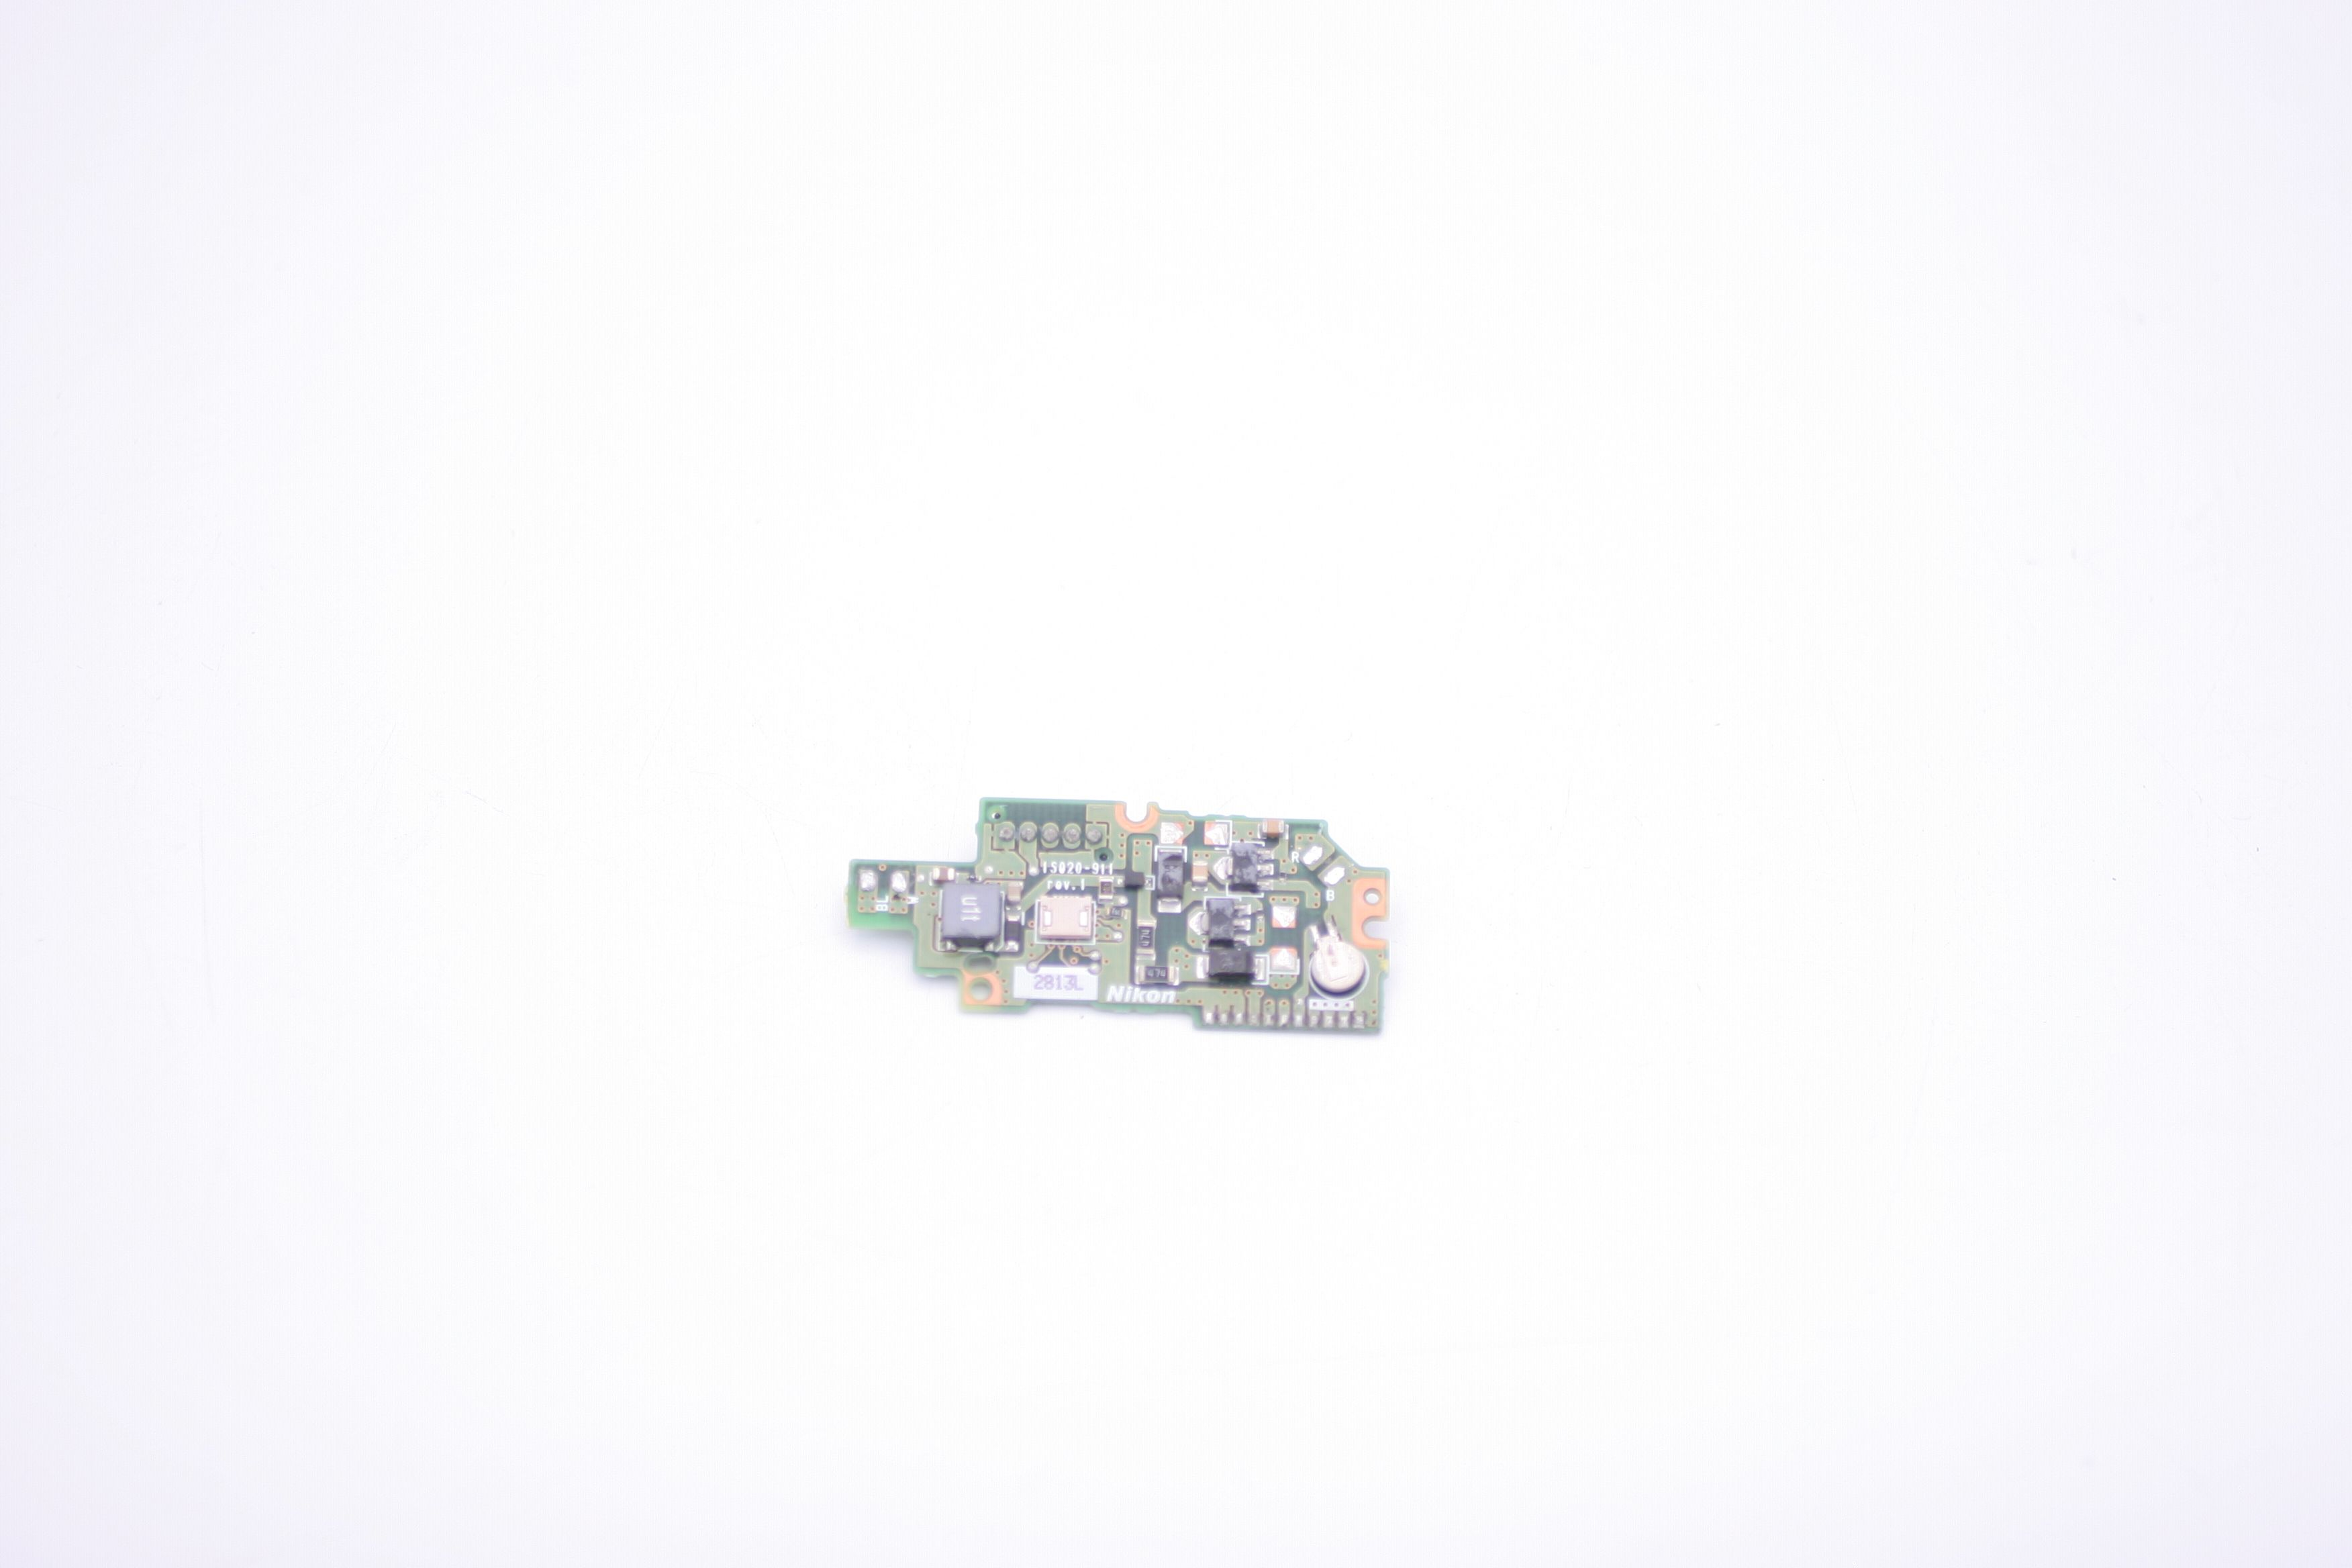 Nikon Coolpix P7700 Power Board Pcb Assembly Replacement Repair Part Circuit Buy Boardpcb